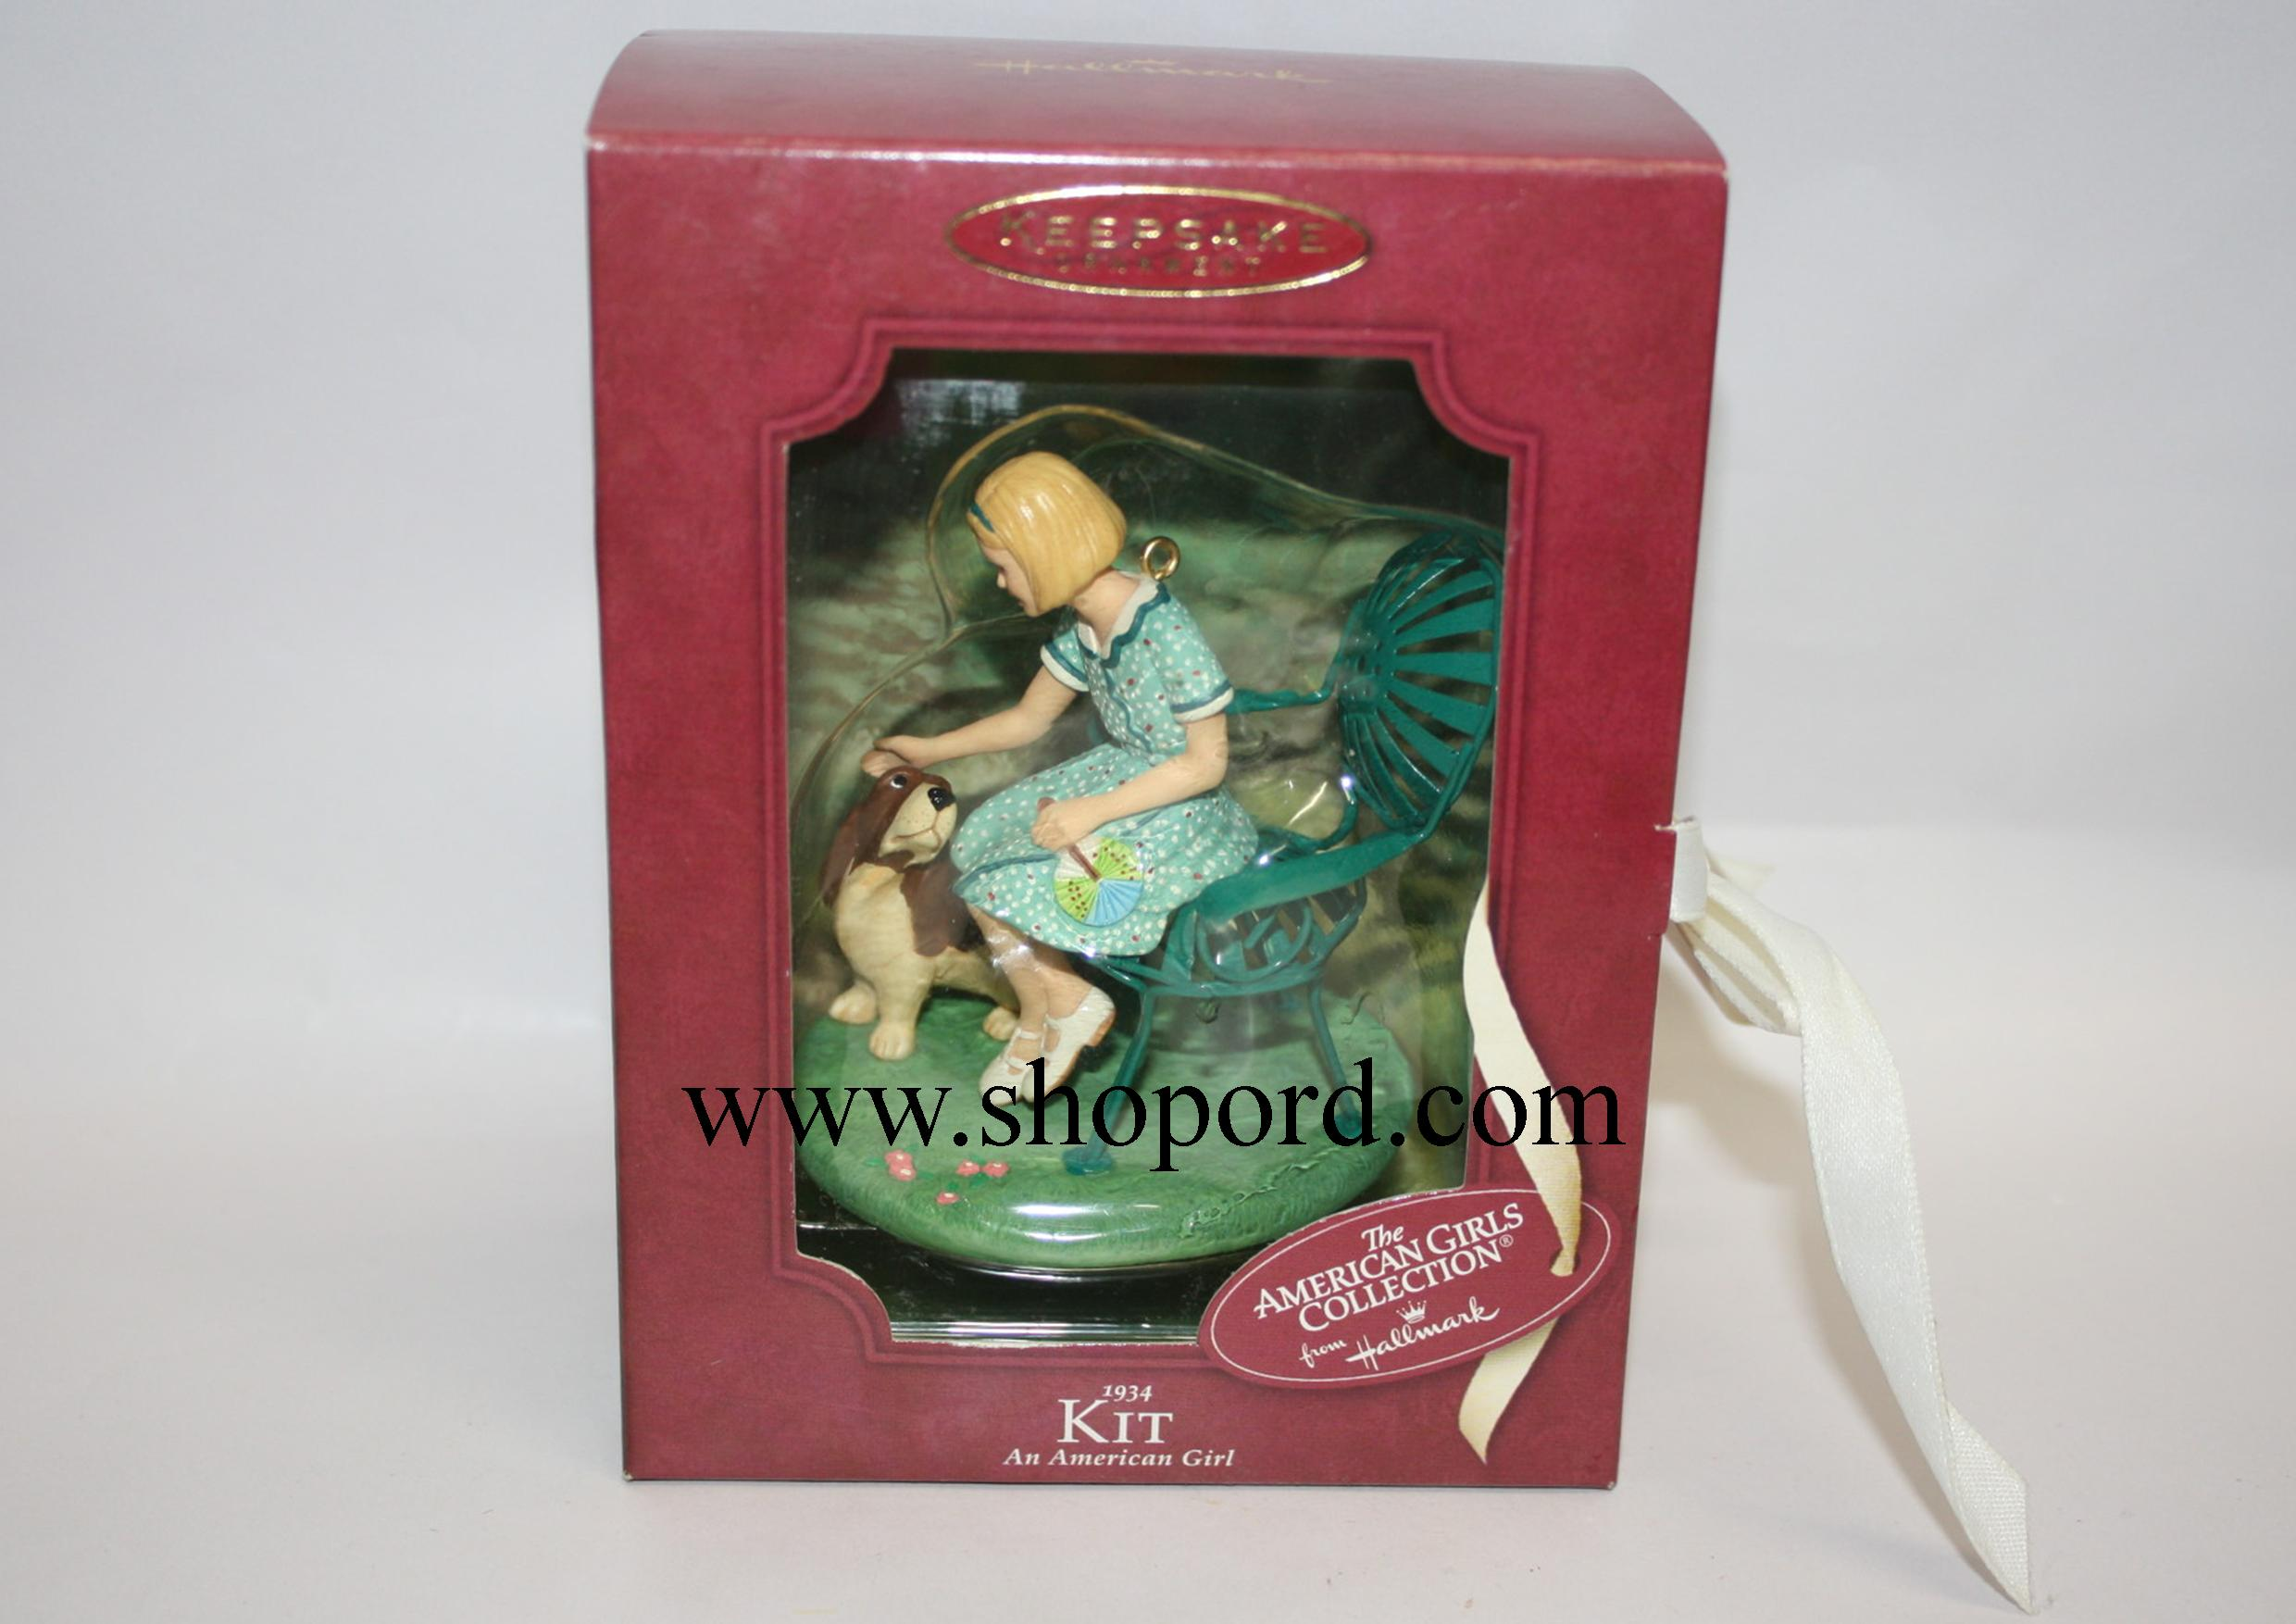 Hallmark 2003 American Girl Kit Ornament 1934 QAC6417